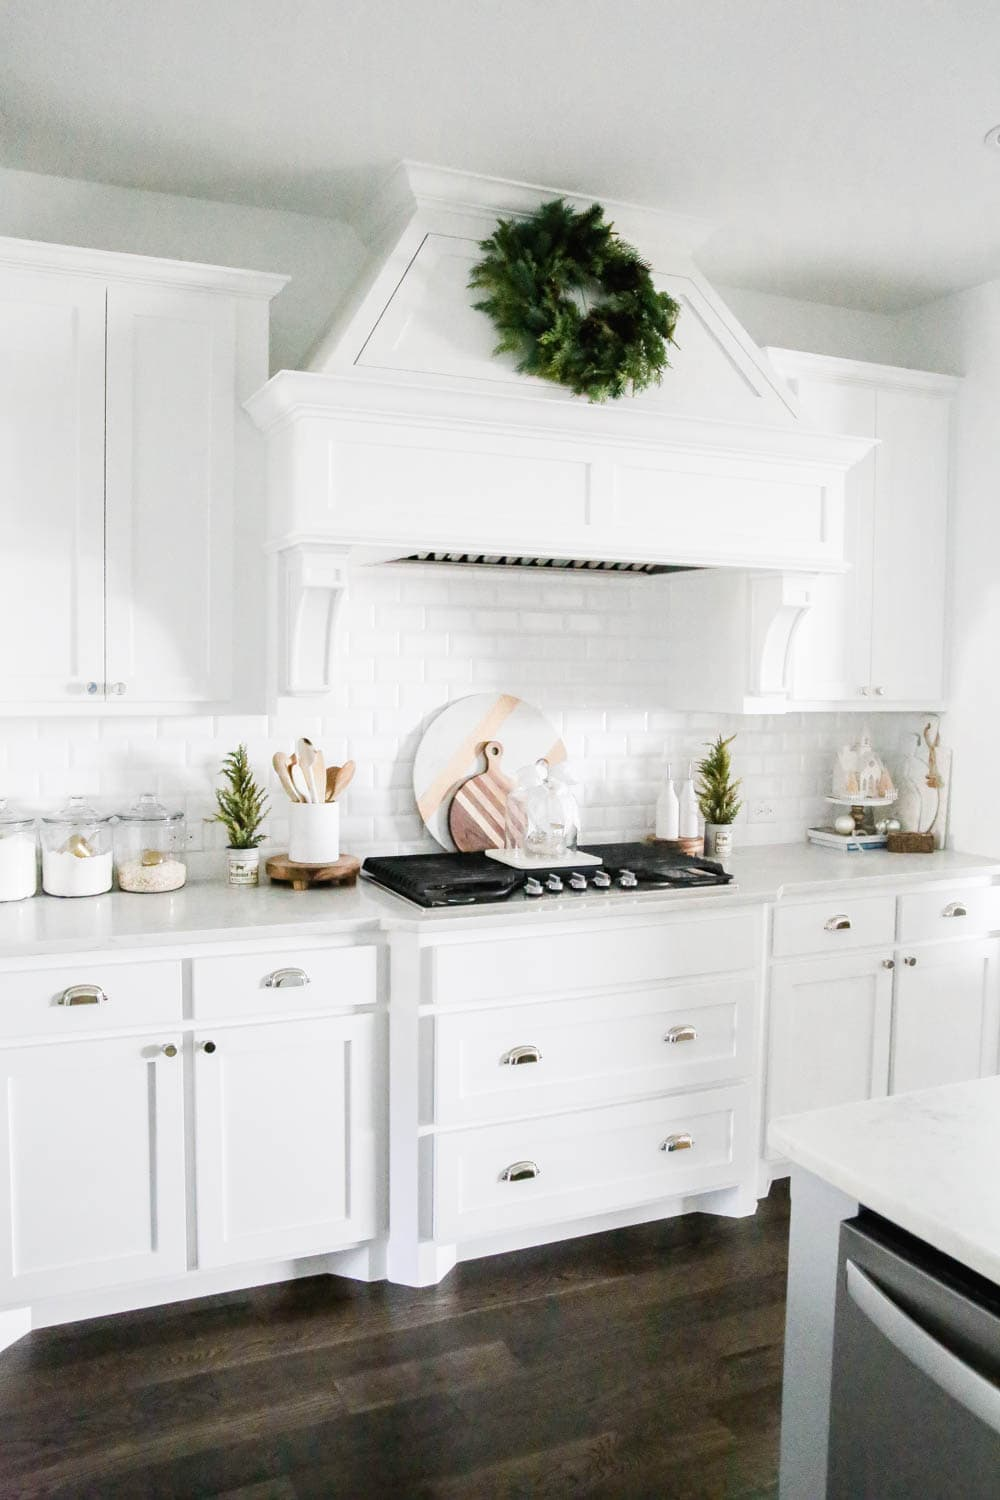 Christmas wreath on kitchen hood, Christmas decorating accents in the kitchen. #ABlissfulNest #whitekitchen #Christmaskitchen